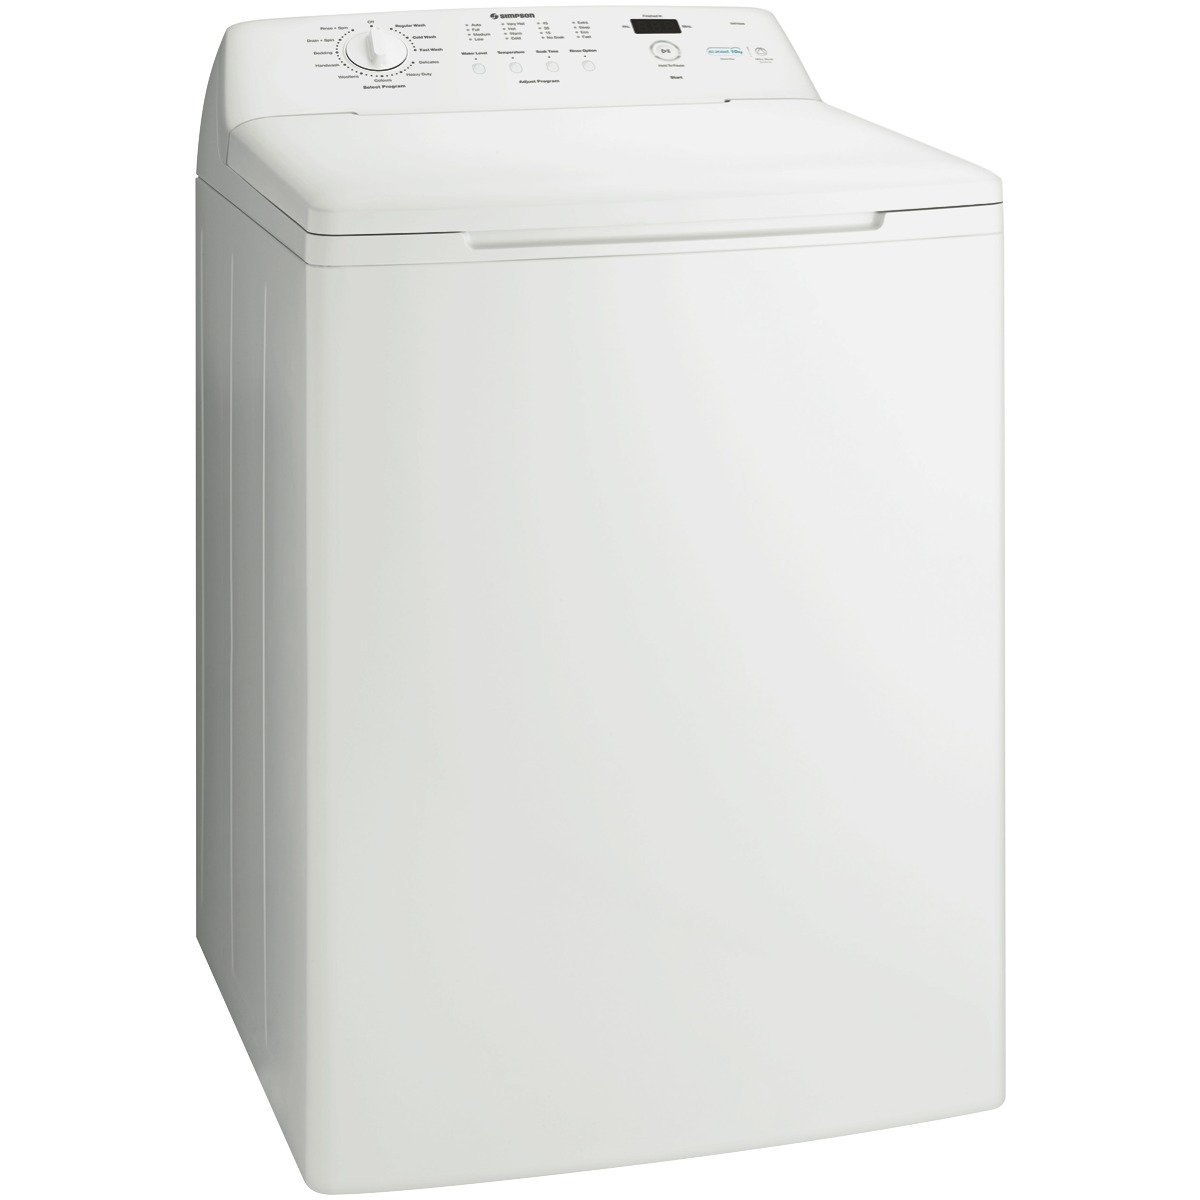 Image of Simpson 10kg Top Load Washer - SWT1043